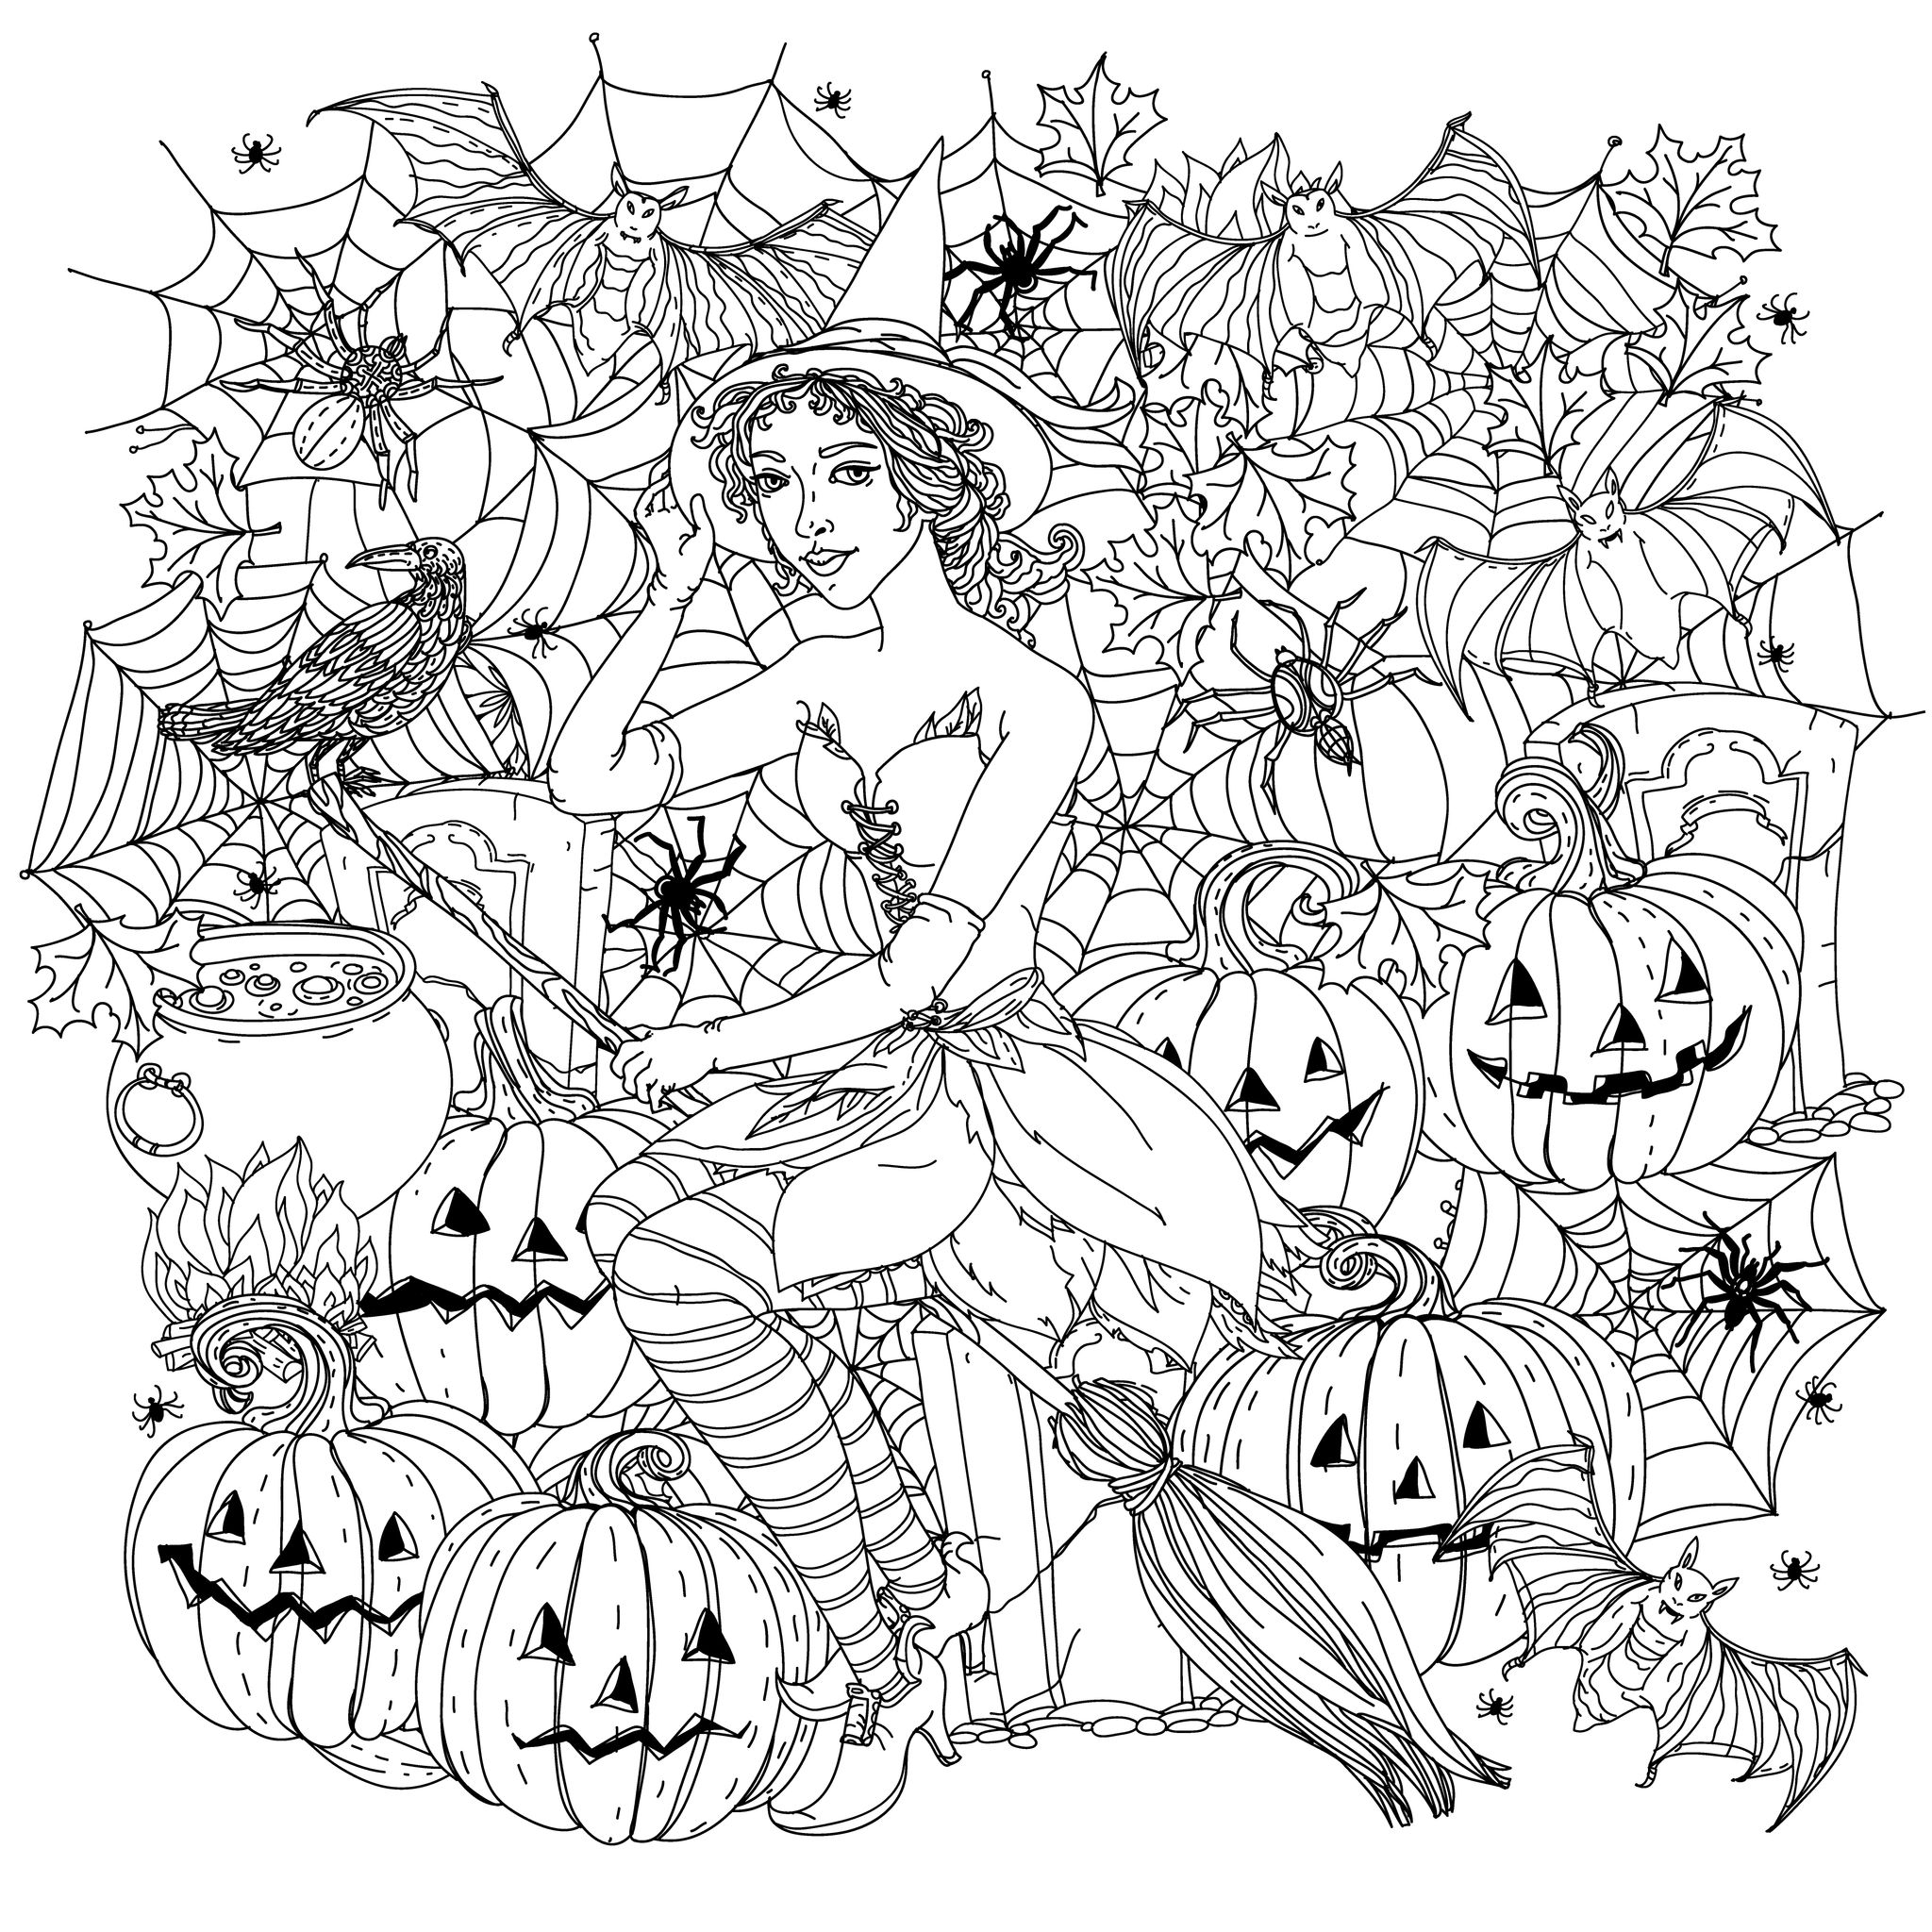 Witch - Coloring Pages for Adults